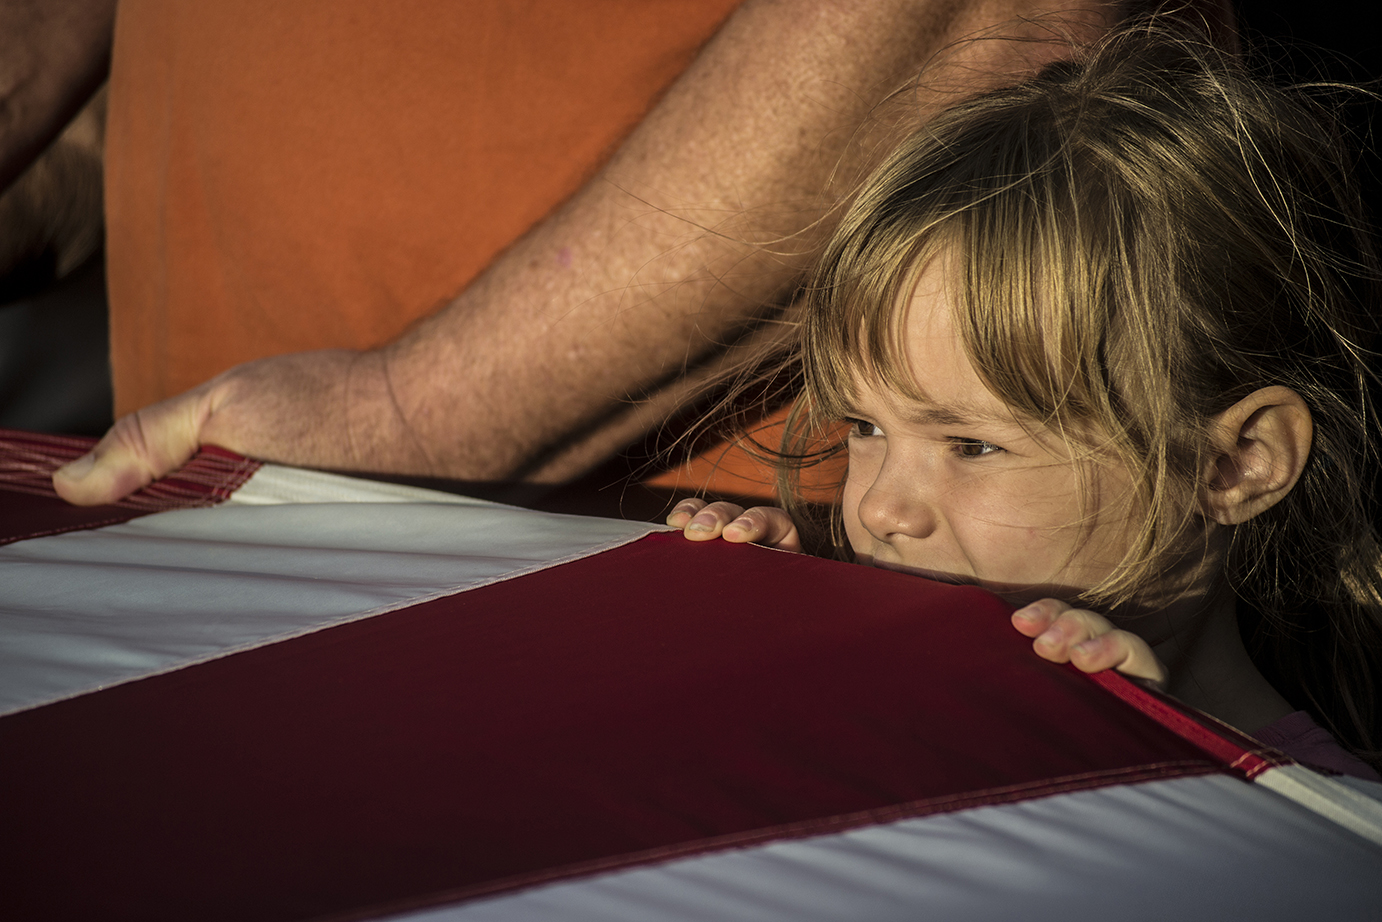 Sarah Kowakzyk, 6, from Indiana, helps to hold a large memorial American flag unfolded by visitors in a ceremony at the Flight 93 Memorial in Shanksville, PA on Sept. 10, 2014. The flag, honoring the victims of Flight 93, is unfolded during a service held every year on September 10 before a candlelight march and vigil.